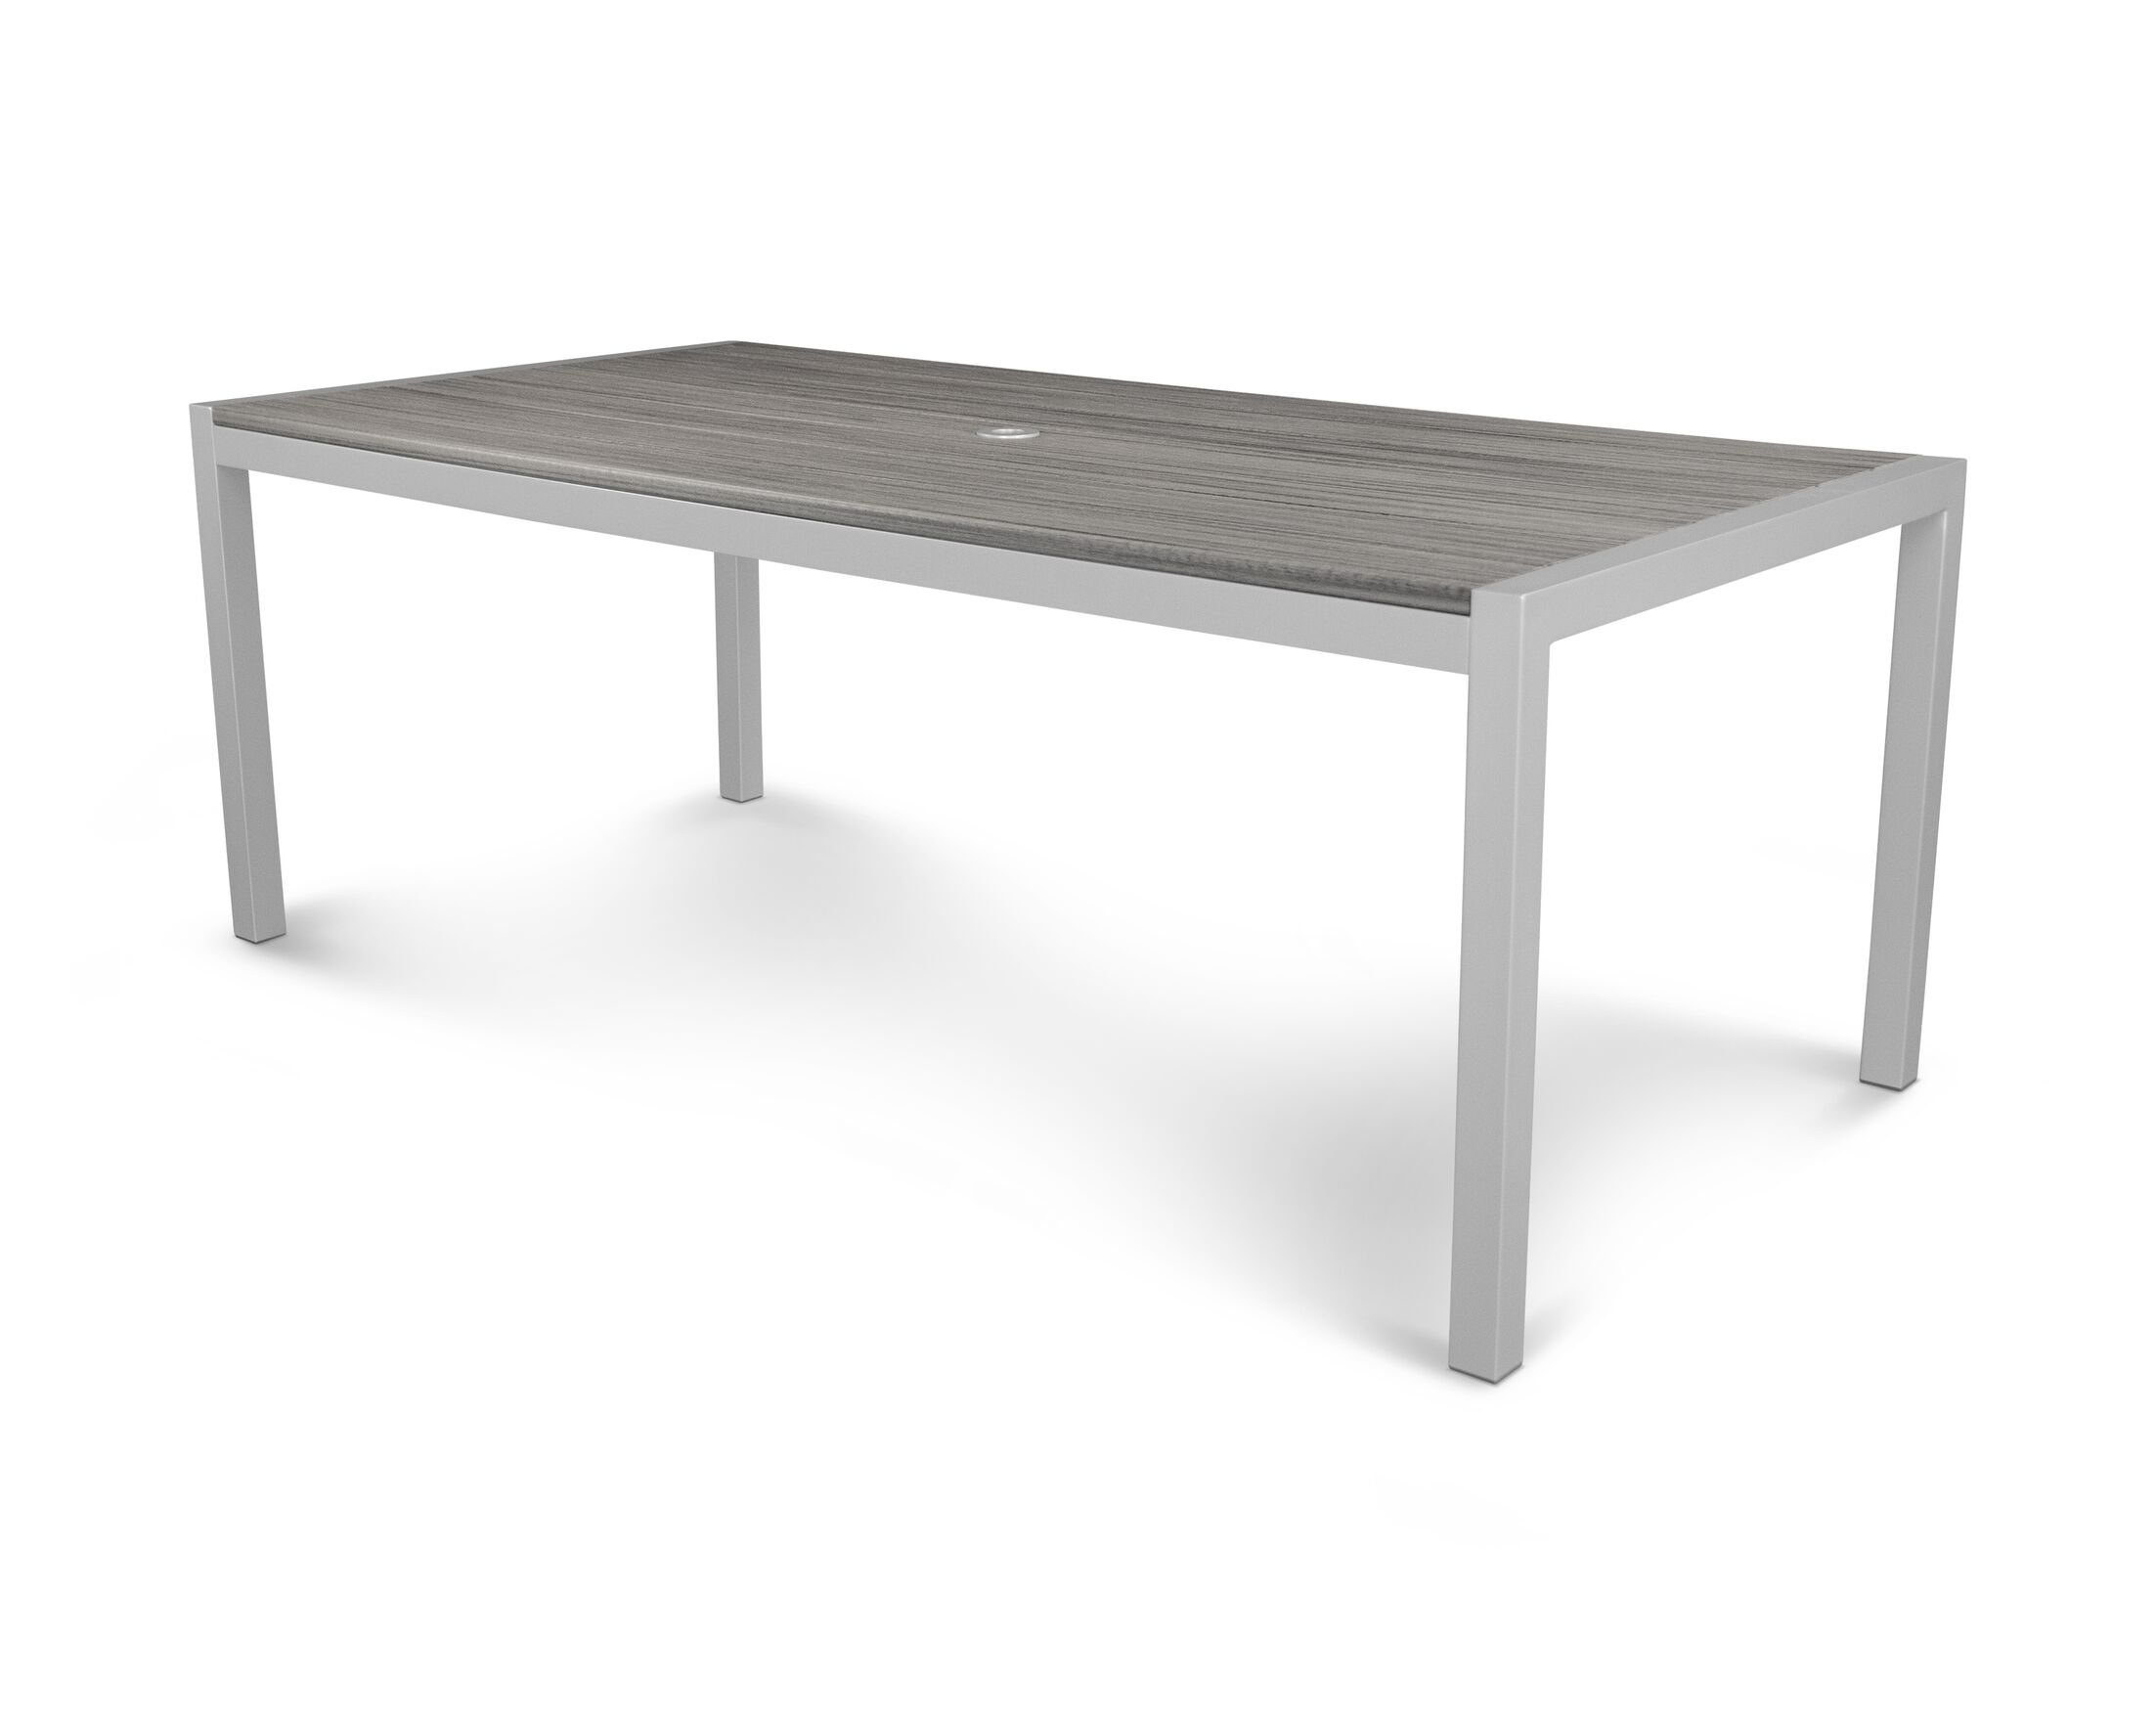 Parsons Dining Table Finish: Satin Silver / Island Mist